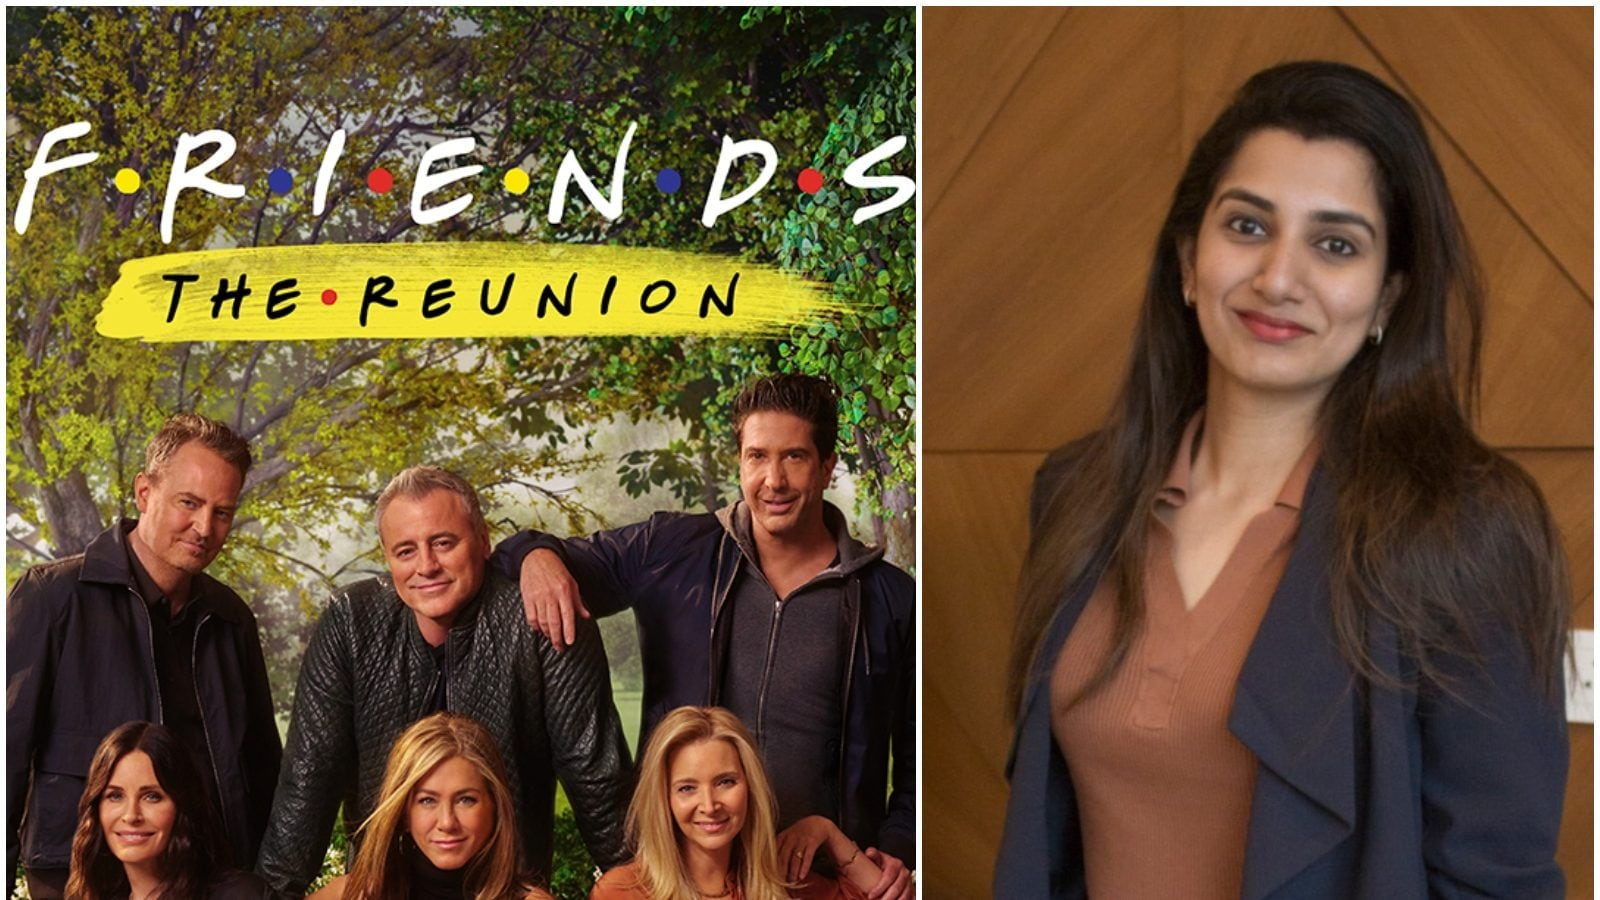 Only Indian Fan to Feature in Friends Reunion: I Had No Idea I'd Be Part of the Final Episode